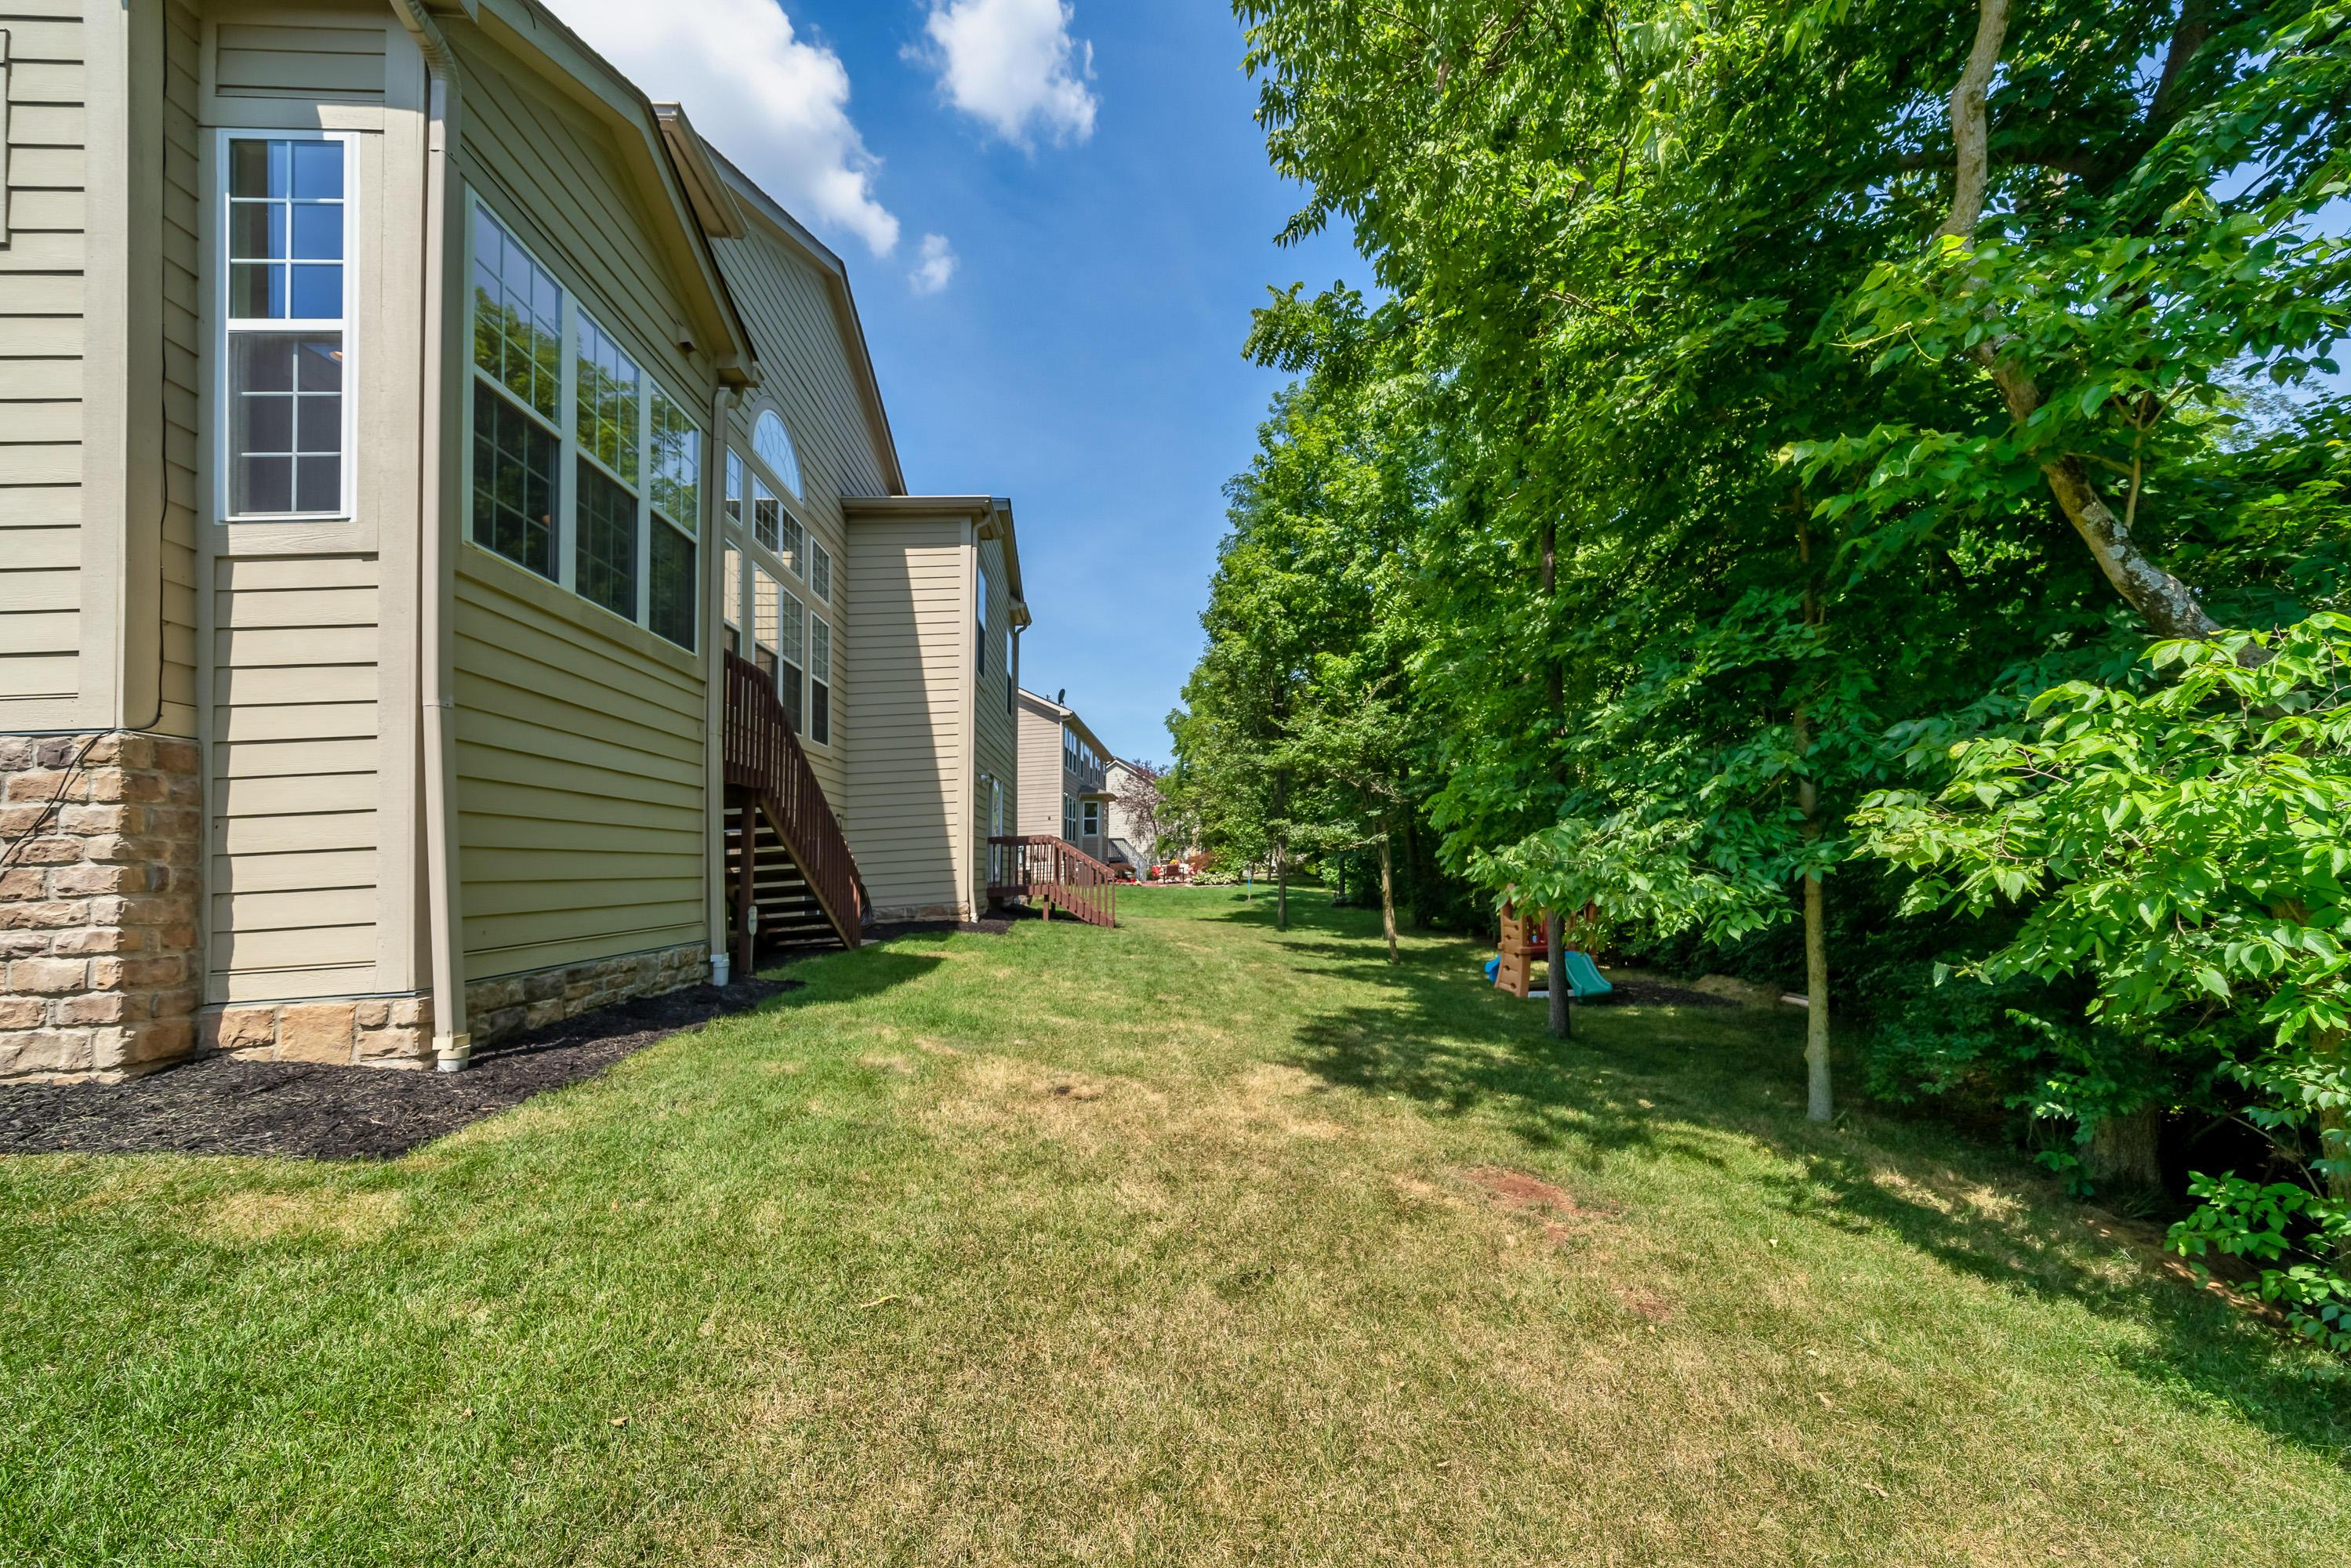 4402 Yellow Wood Drive, Dublin, Ohio 43016, 4 Bedrooms Bedrooms, ,4 BathroomsBathrooms,Residential,For Sale,Yellow Wood,220023513